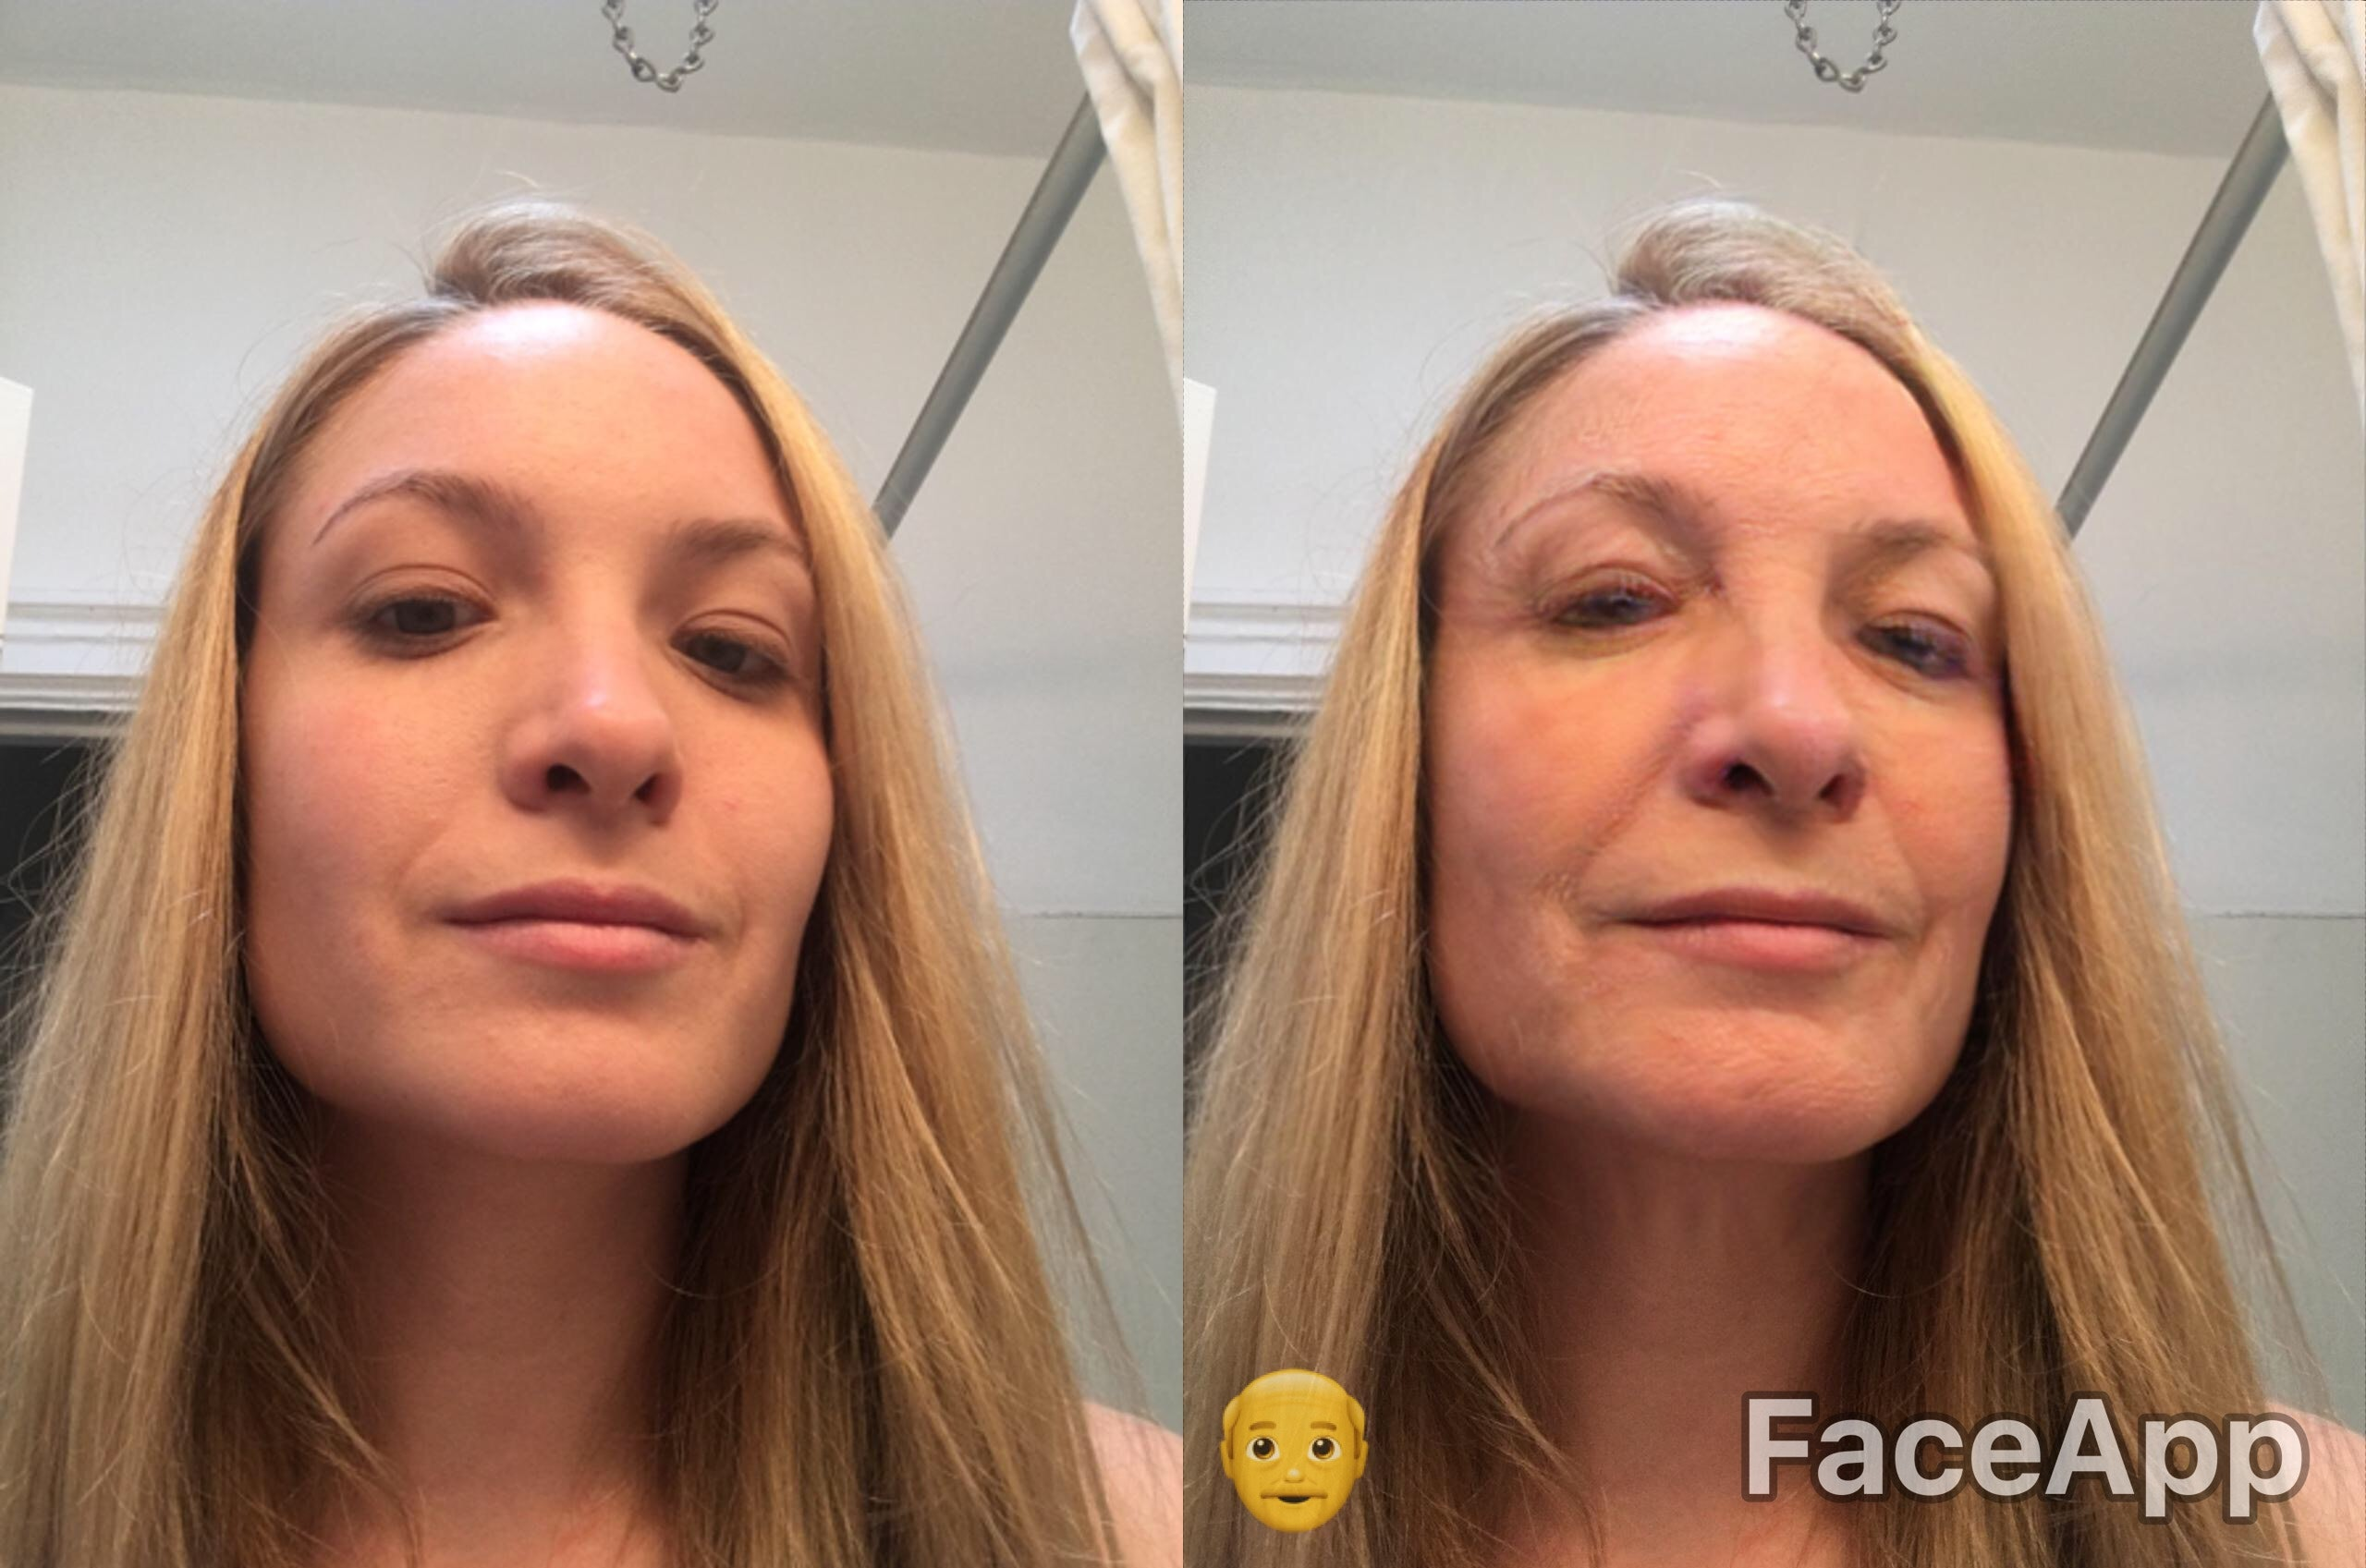 These Apps Like FaceApp Will Take Your Selfie Editing To The